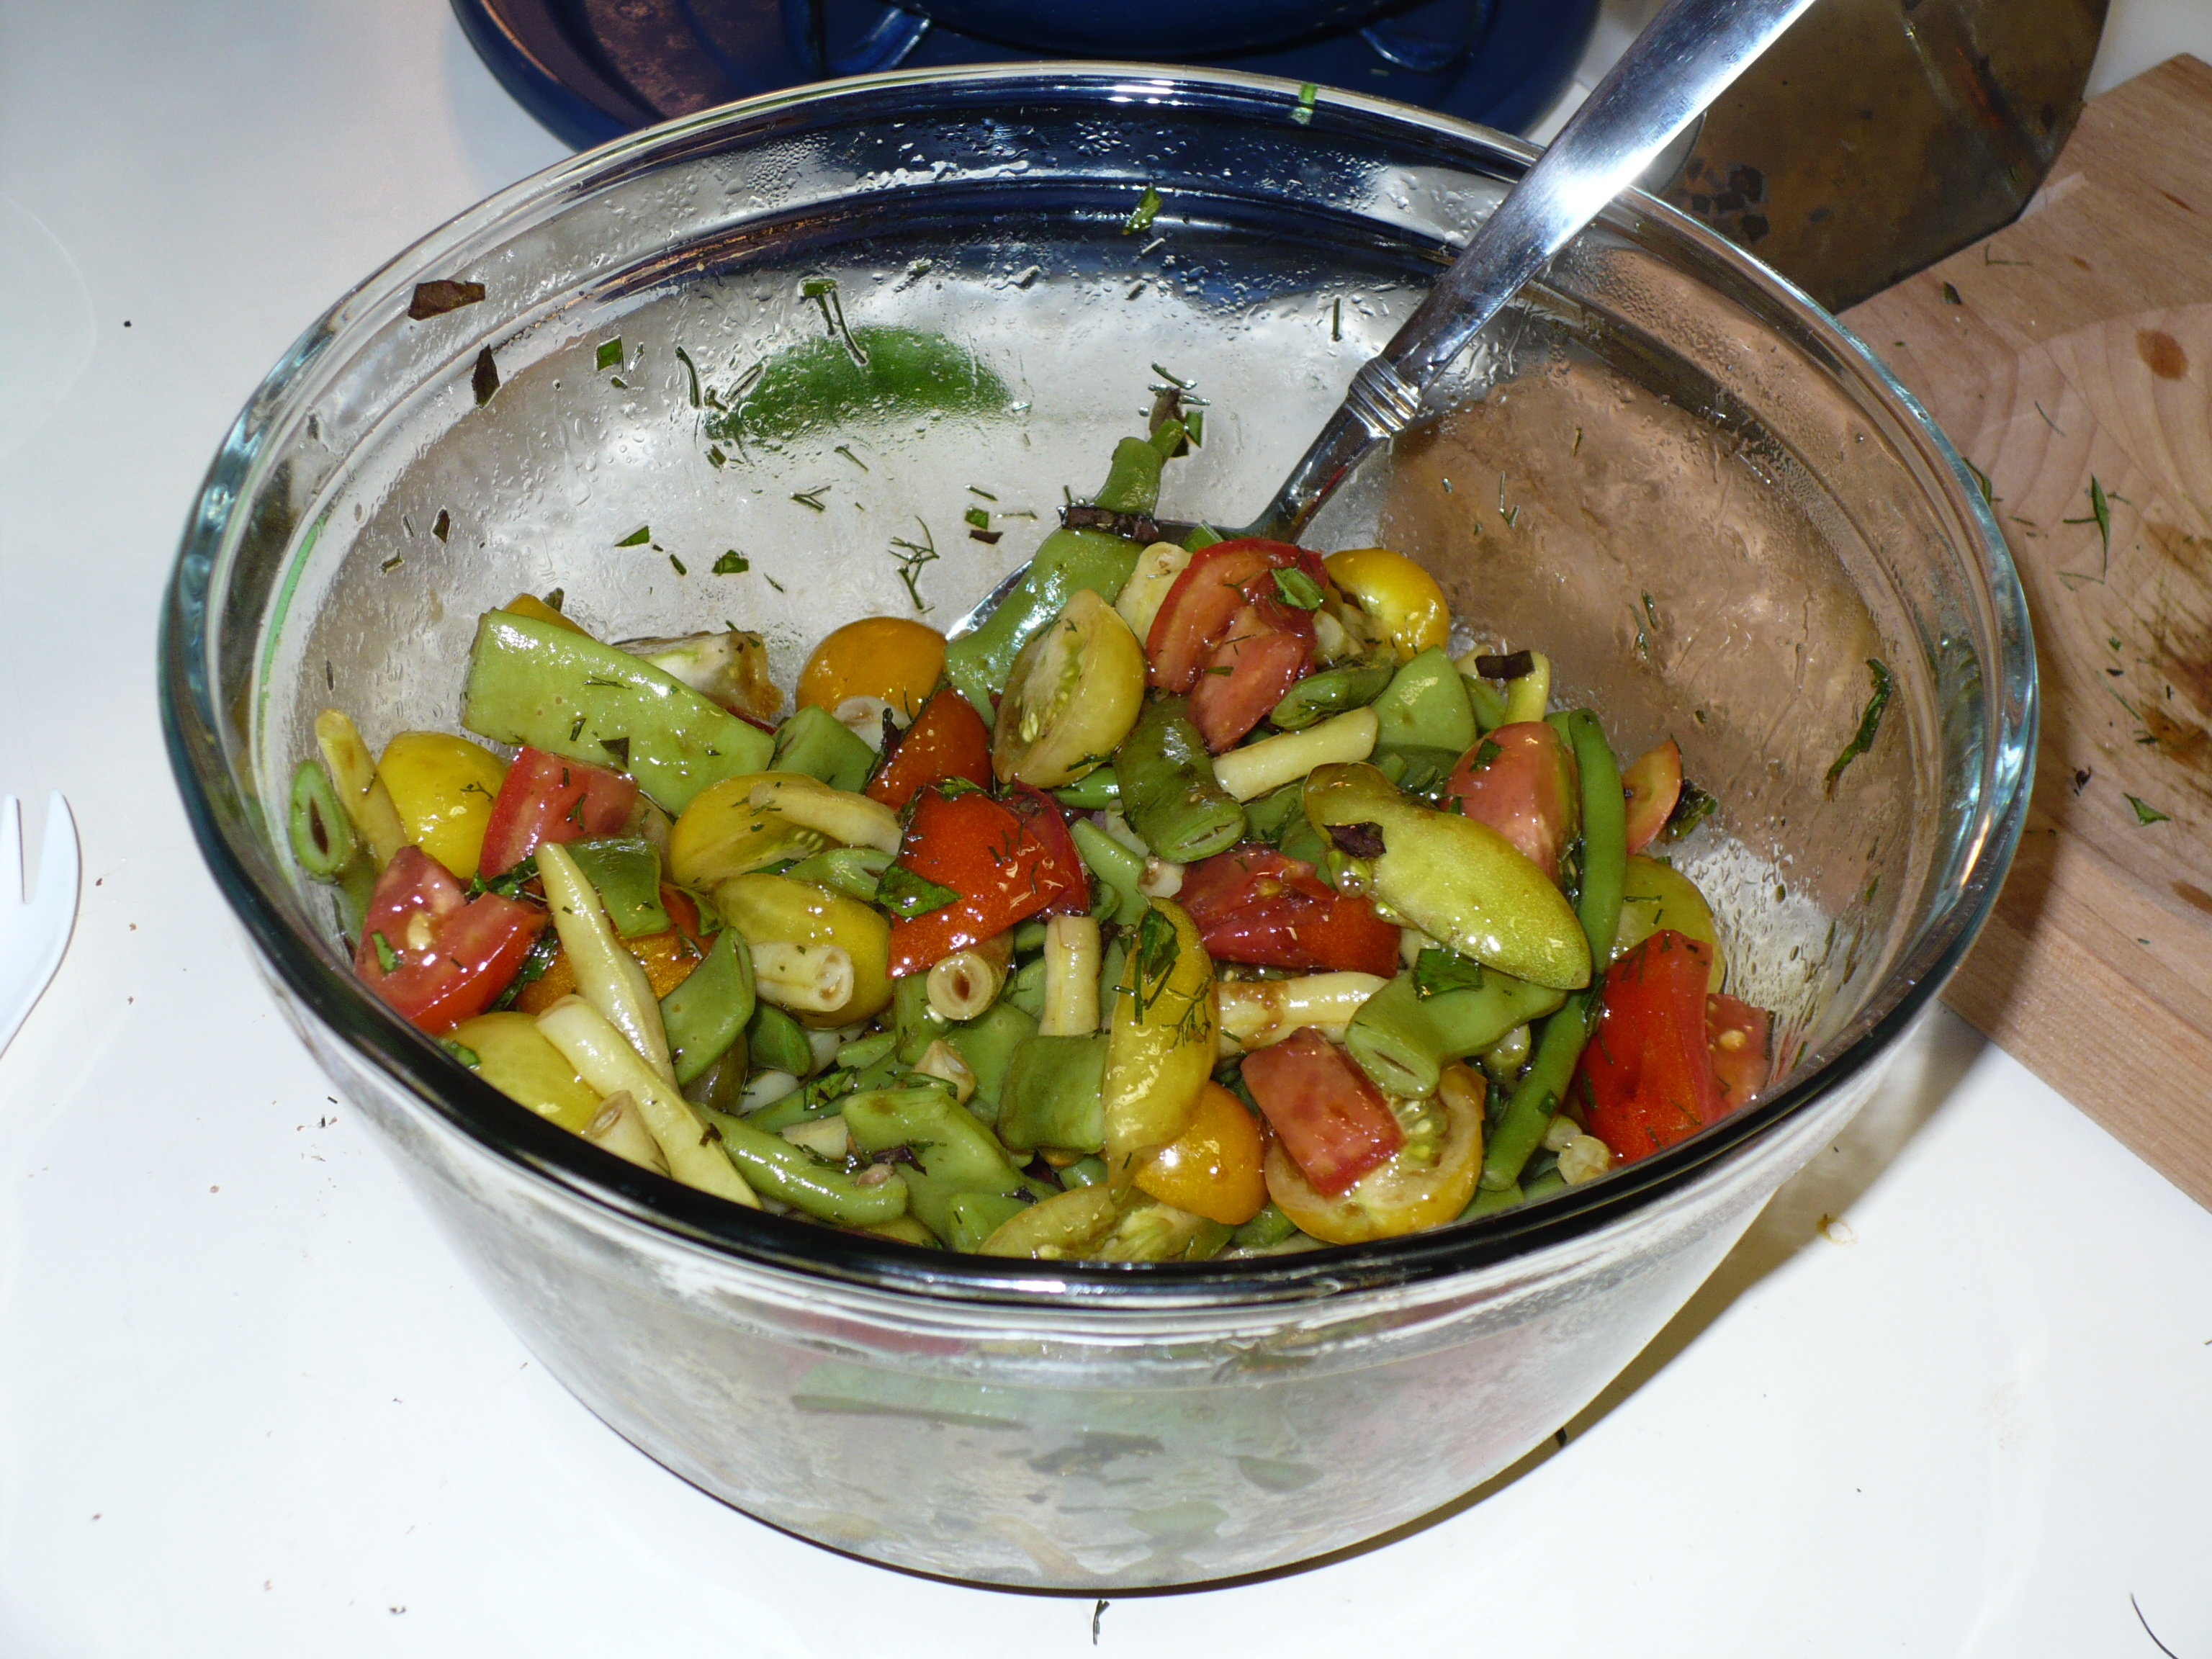 Finished Salad